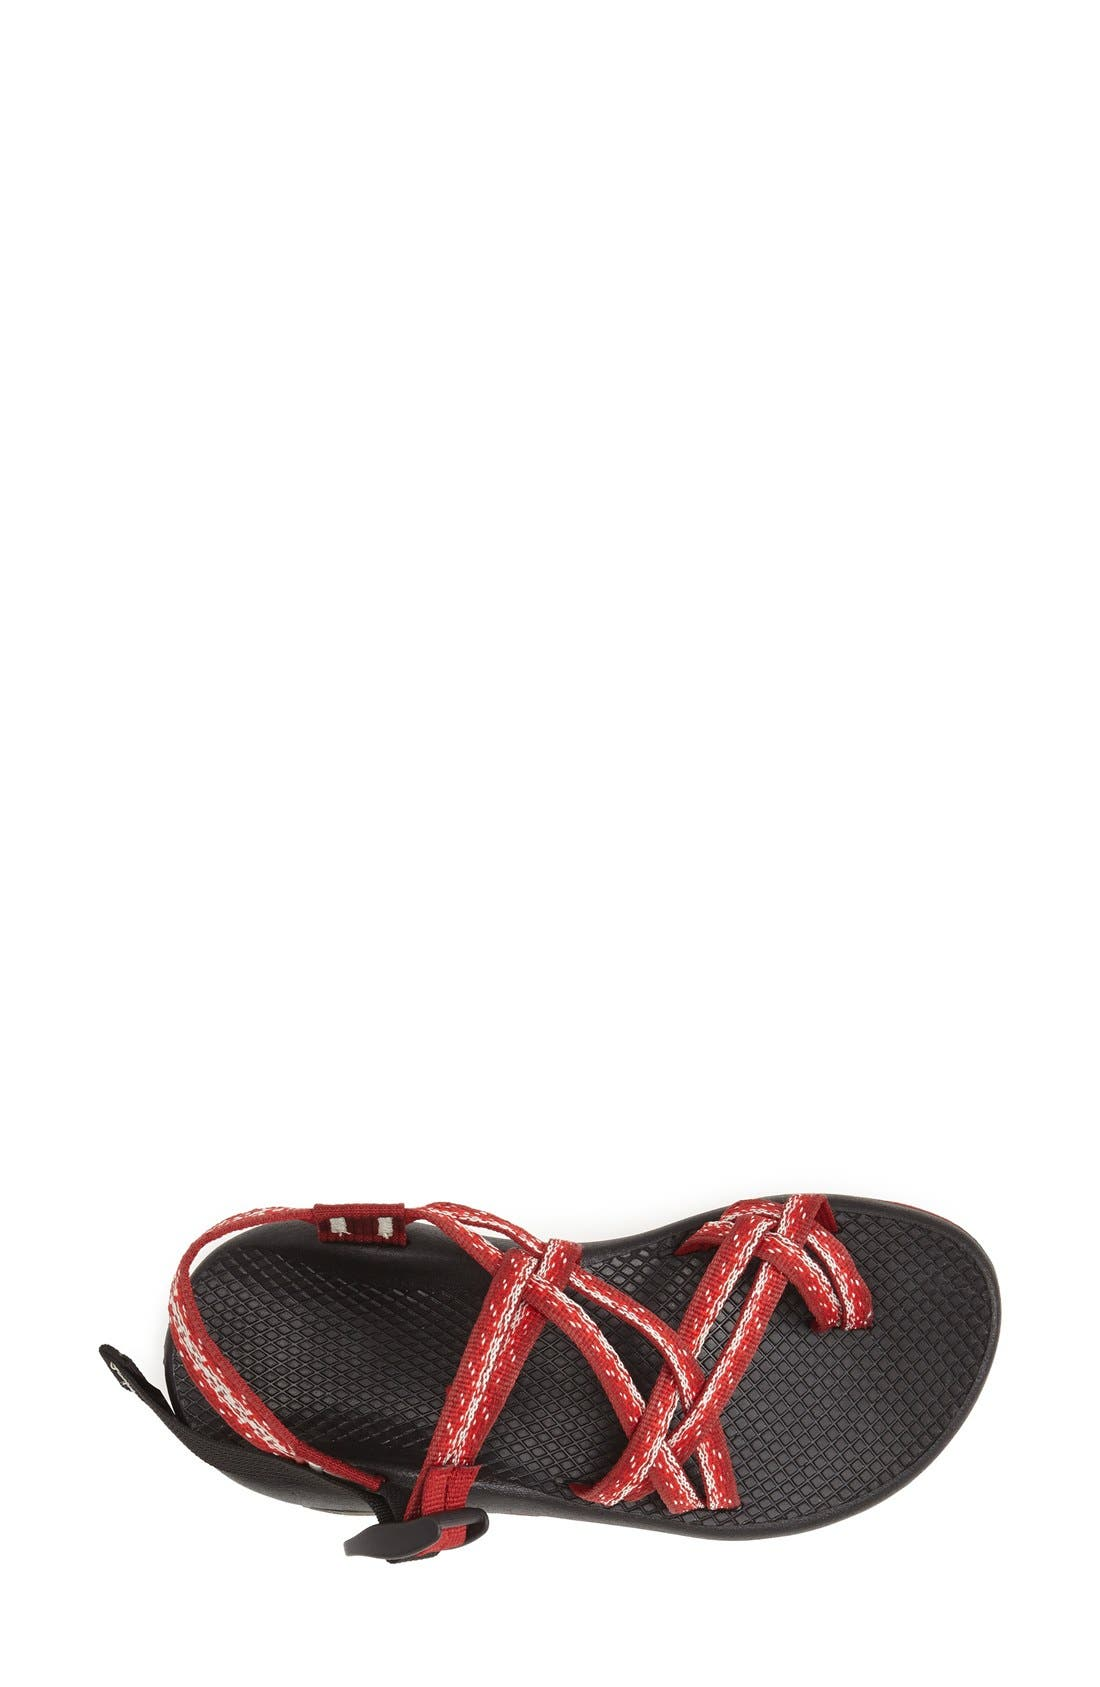 Alternate Image 3  - Chaco 'ZX2 Yampa' Sandal (Women)